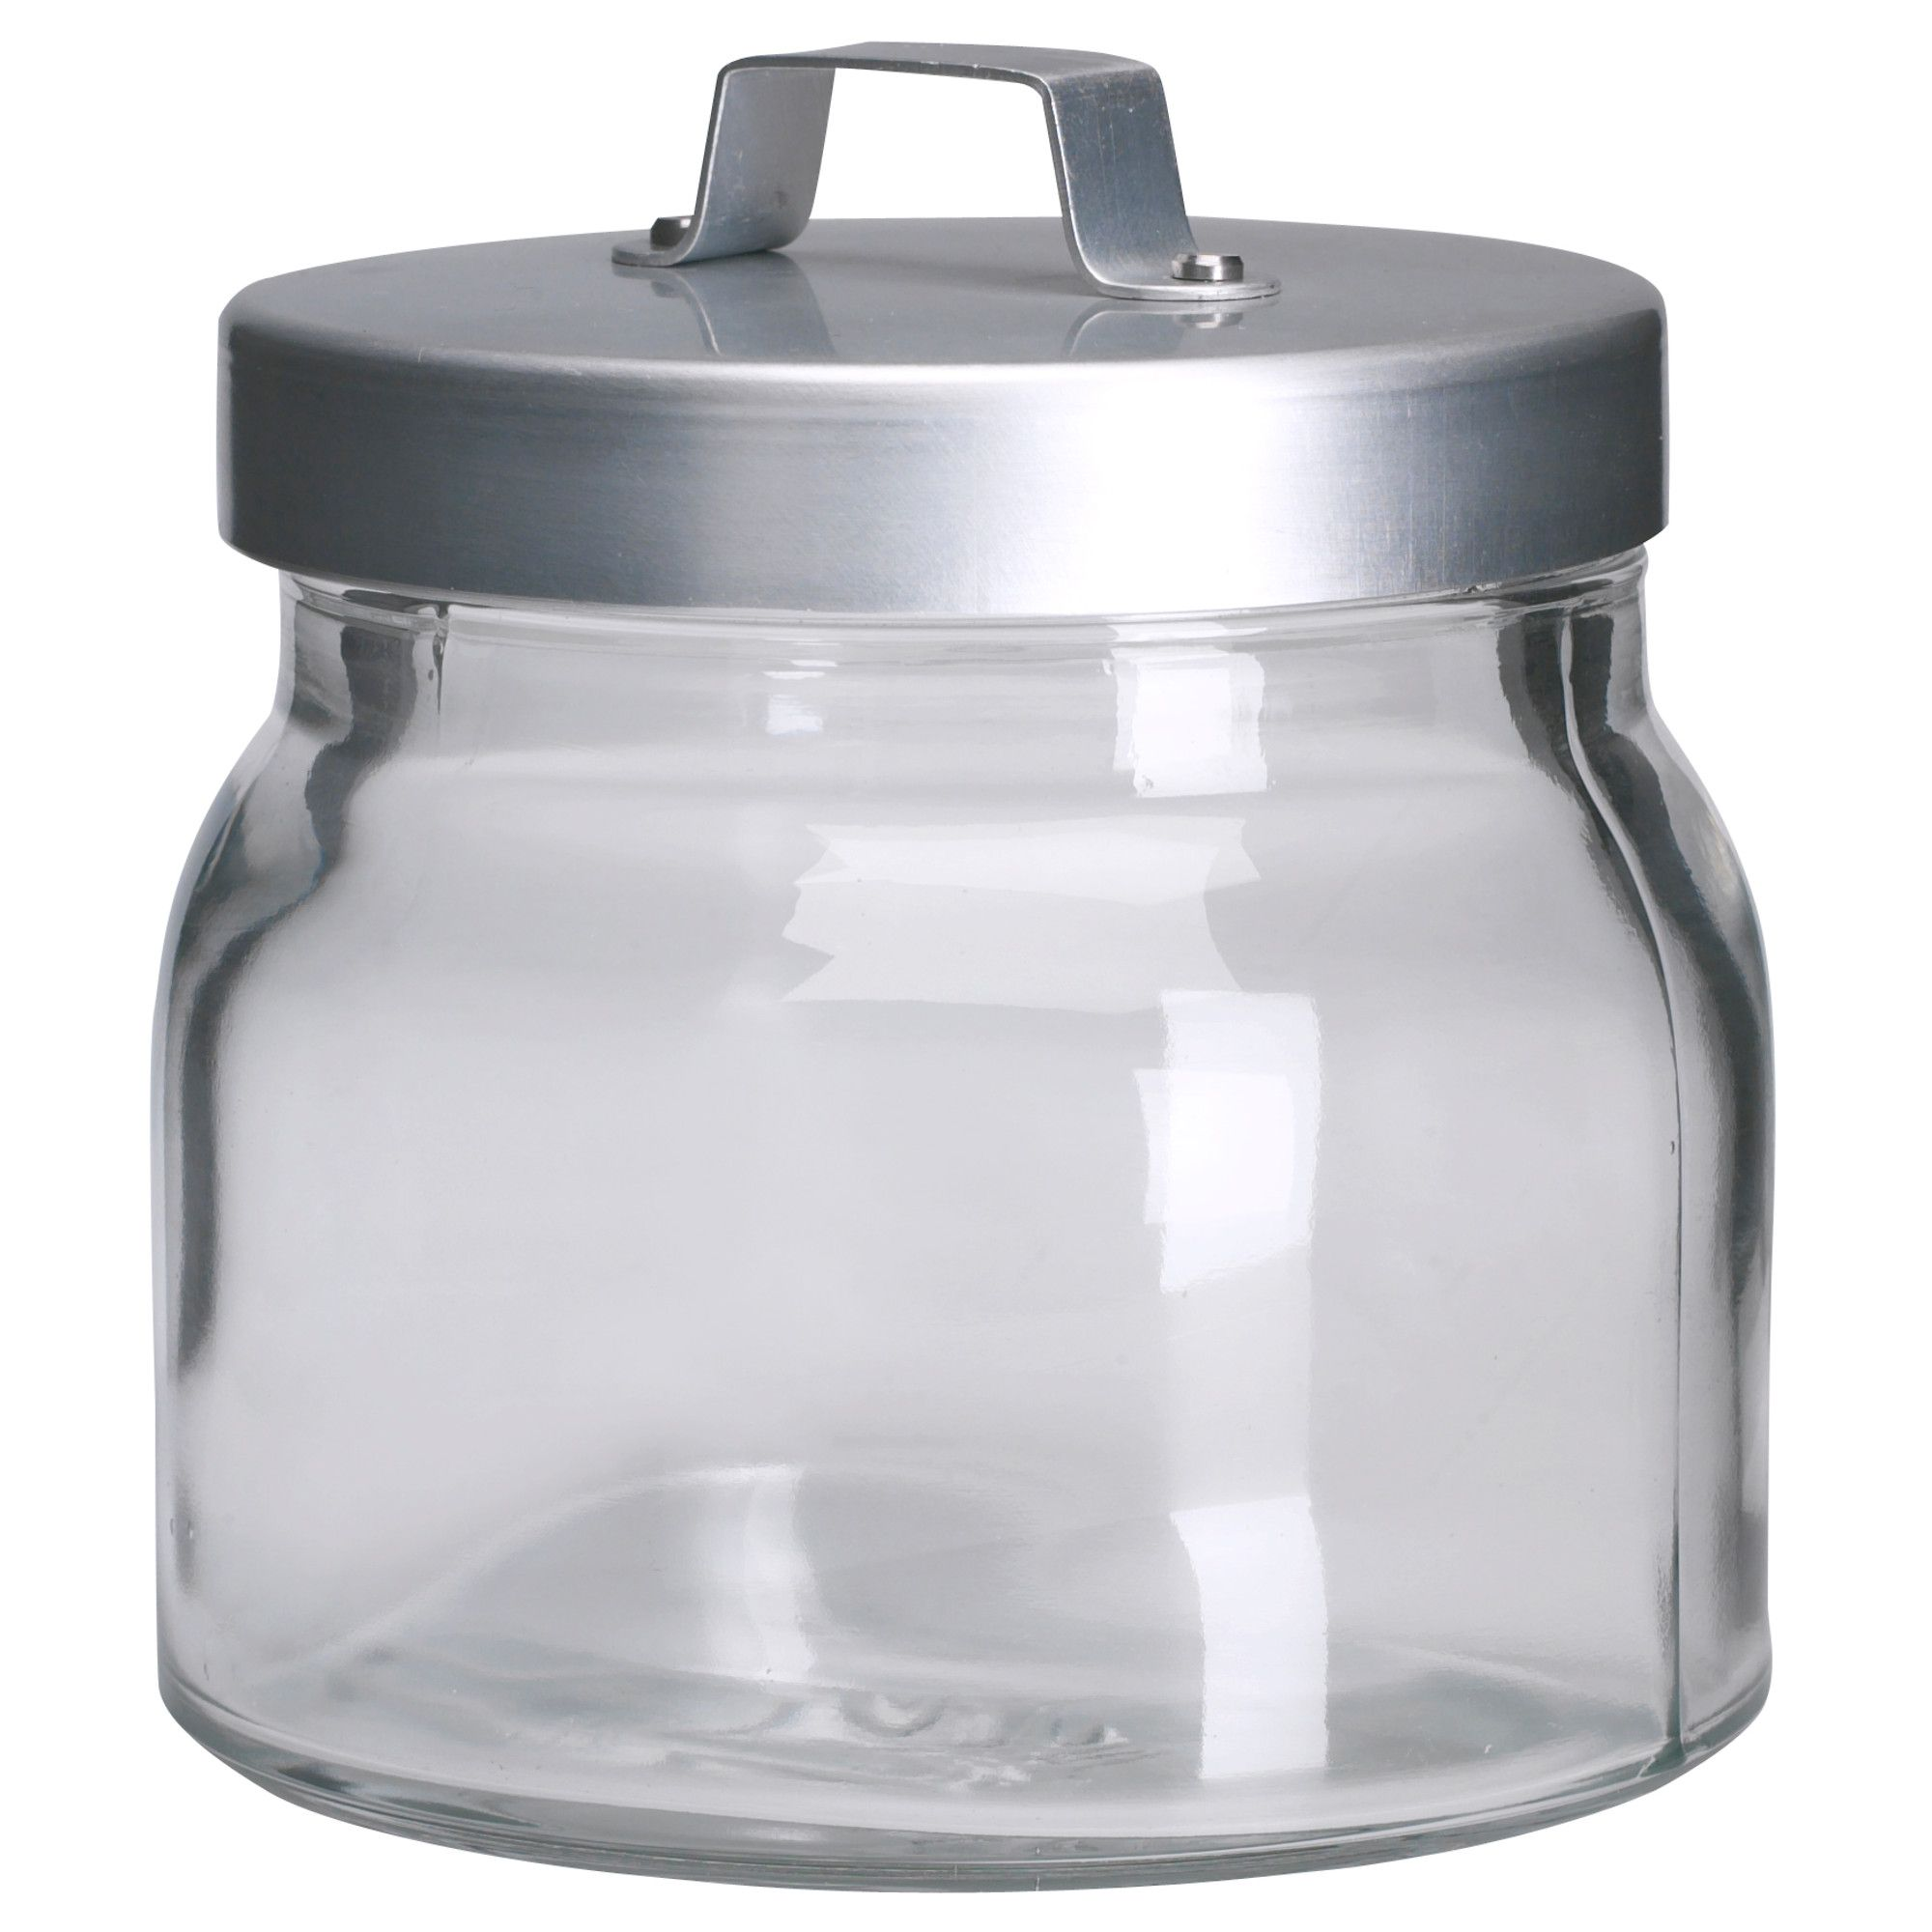 burken jar with lid clear glass aluminum 17oz 2 99 37oz 3 99 burken jar with lid clear glass aluminum 17oz 2 99 37oz 3 99